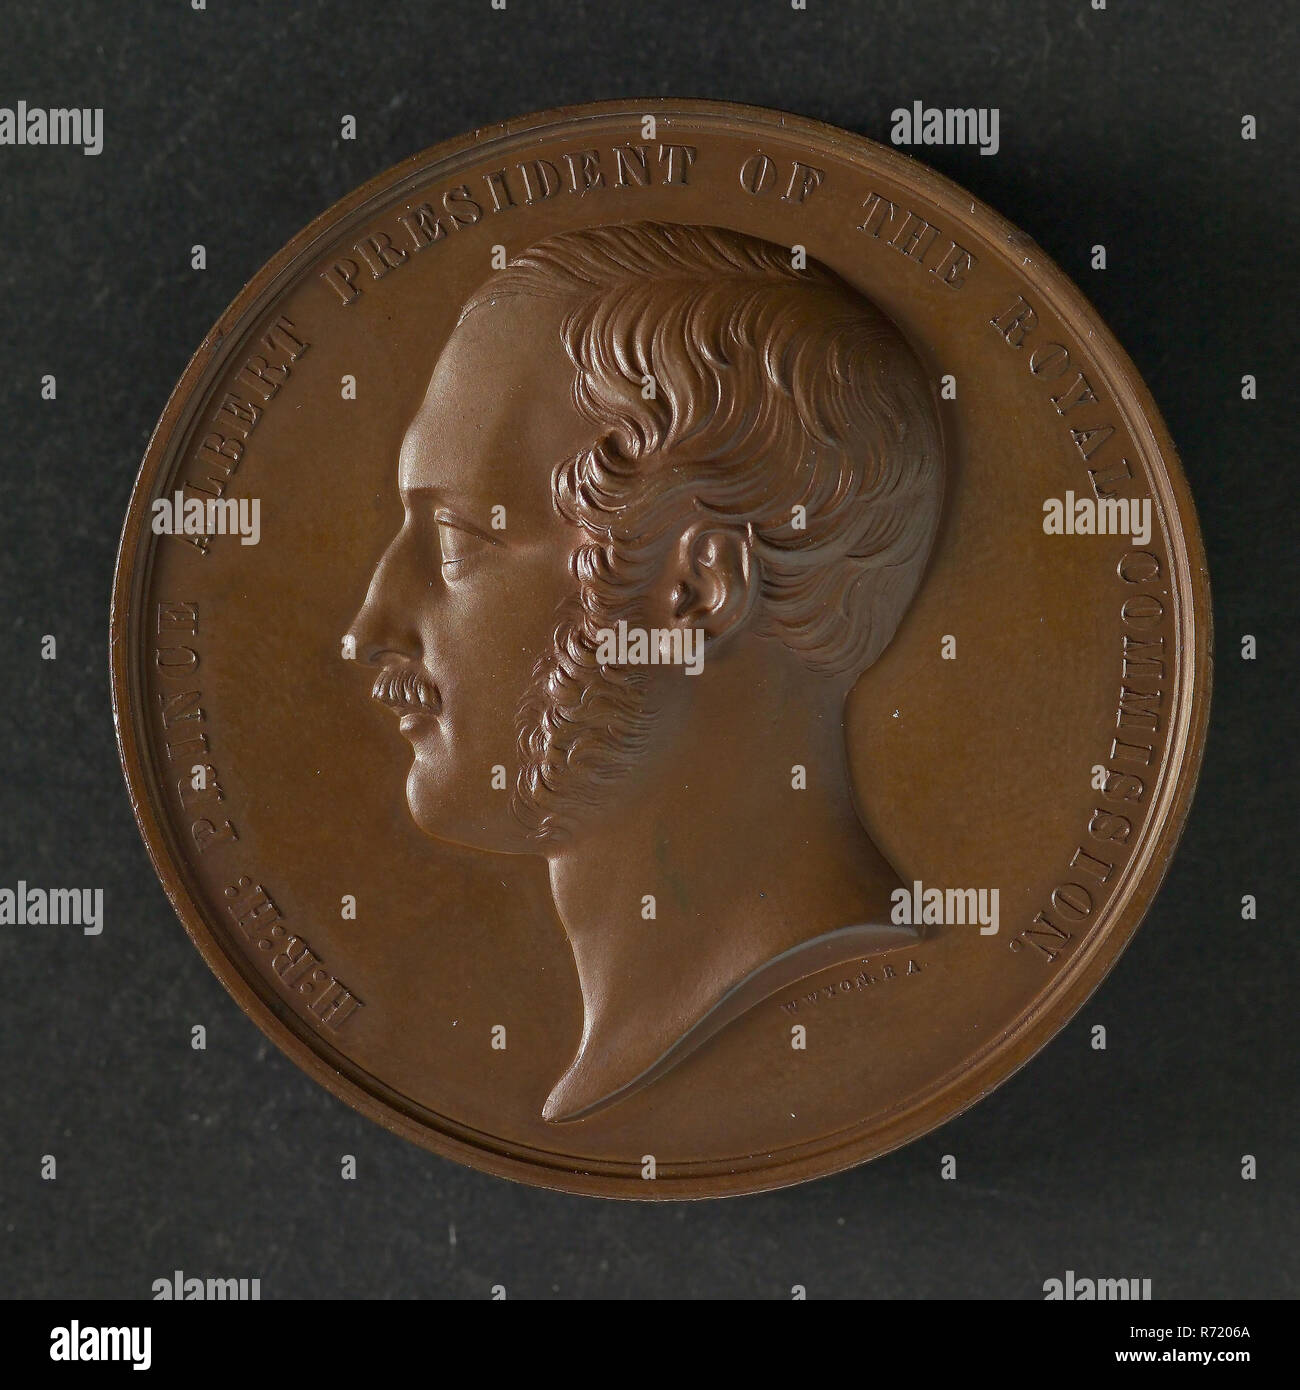 W. Wyon B.A., Medal at the World Exhibition in London in 1851, medallions bronze bronze 4,4, portrait of Prince Albert left omschrift: H: R: H: PRINCE ALBERT PRESIDENT OF THE ROYAL COMMISSION (signed under portrait) Rotterdam lacquer factory paint factory varnish factory lacquer paint varnish company Duura en Versteeven London World Exhibition Medal awarded to the company Duura and Versteeven in Rotterdam. Stock Photo